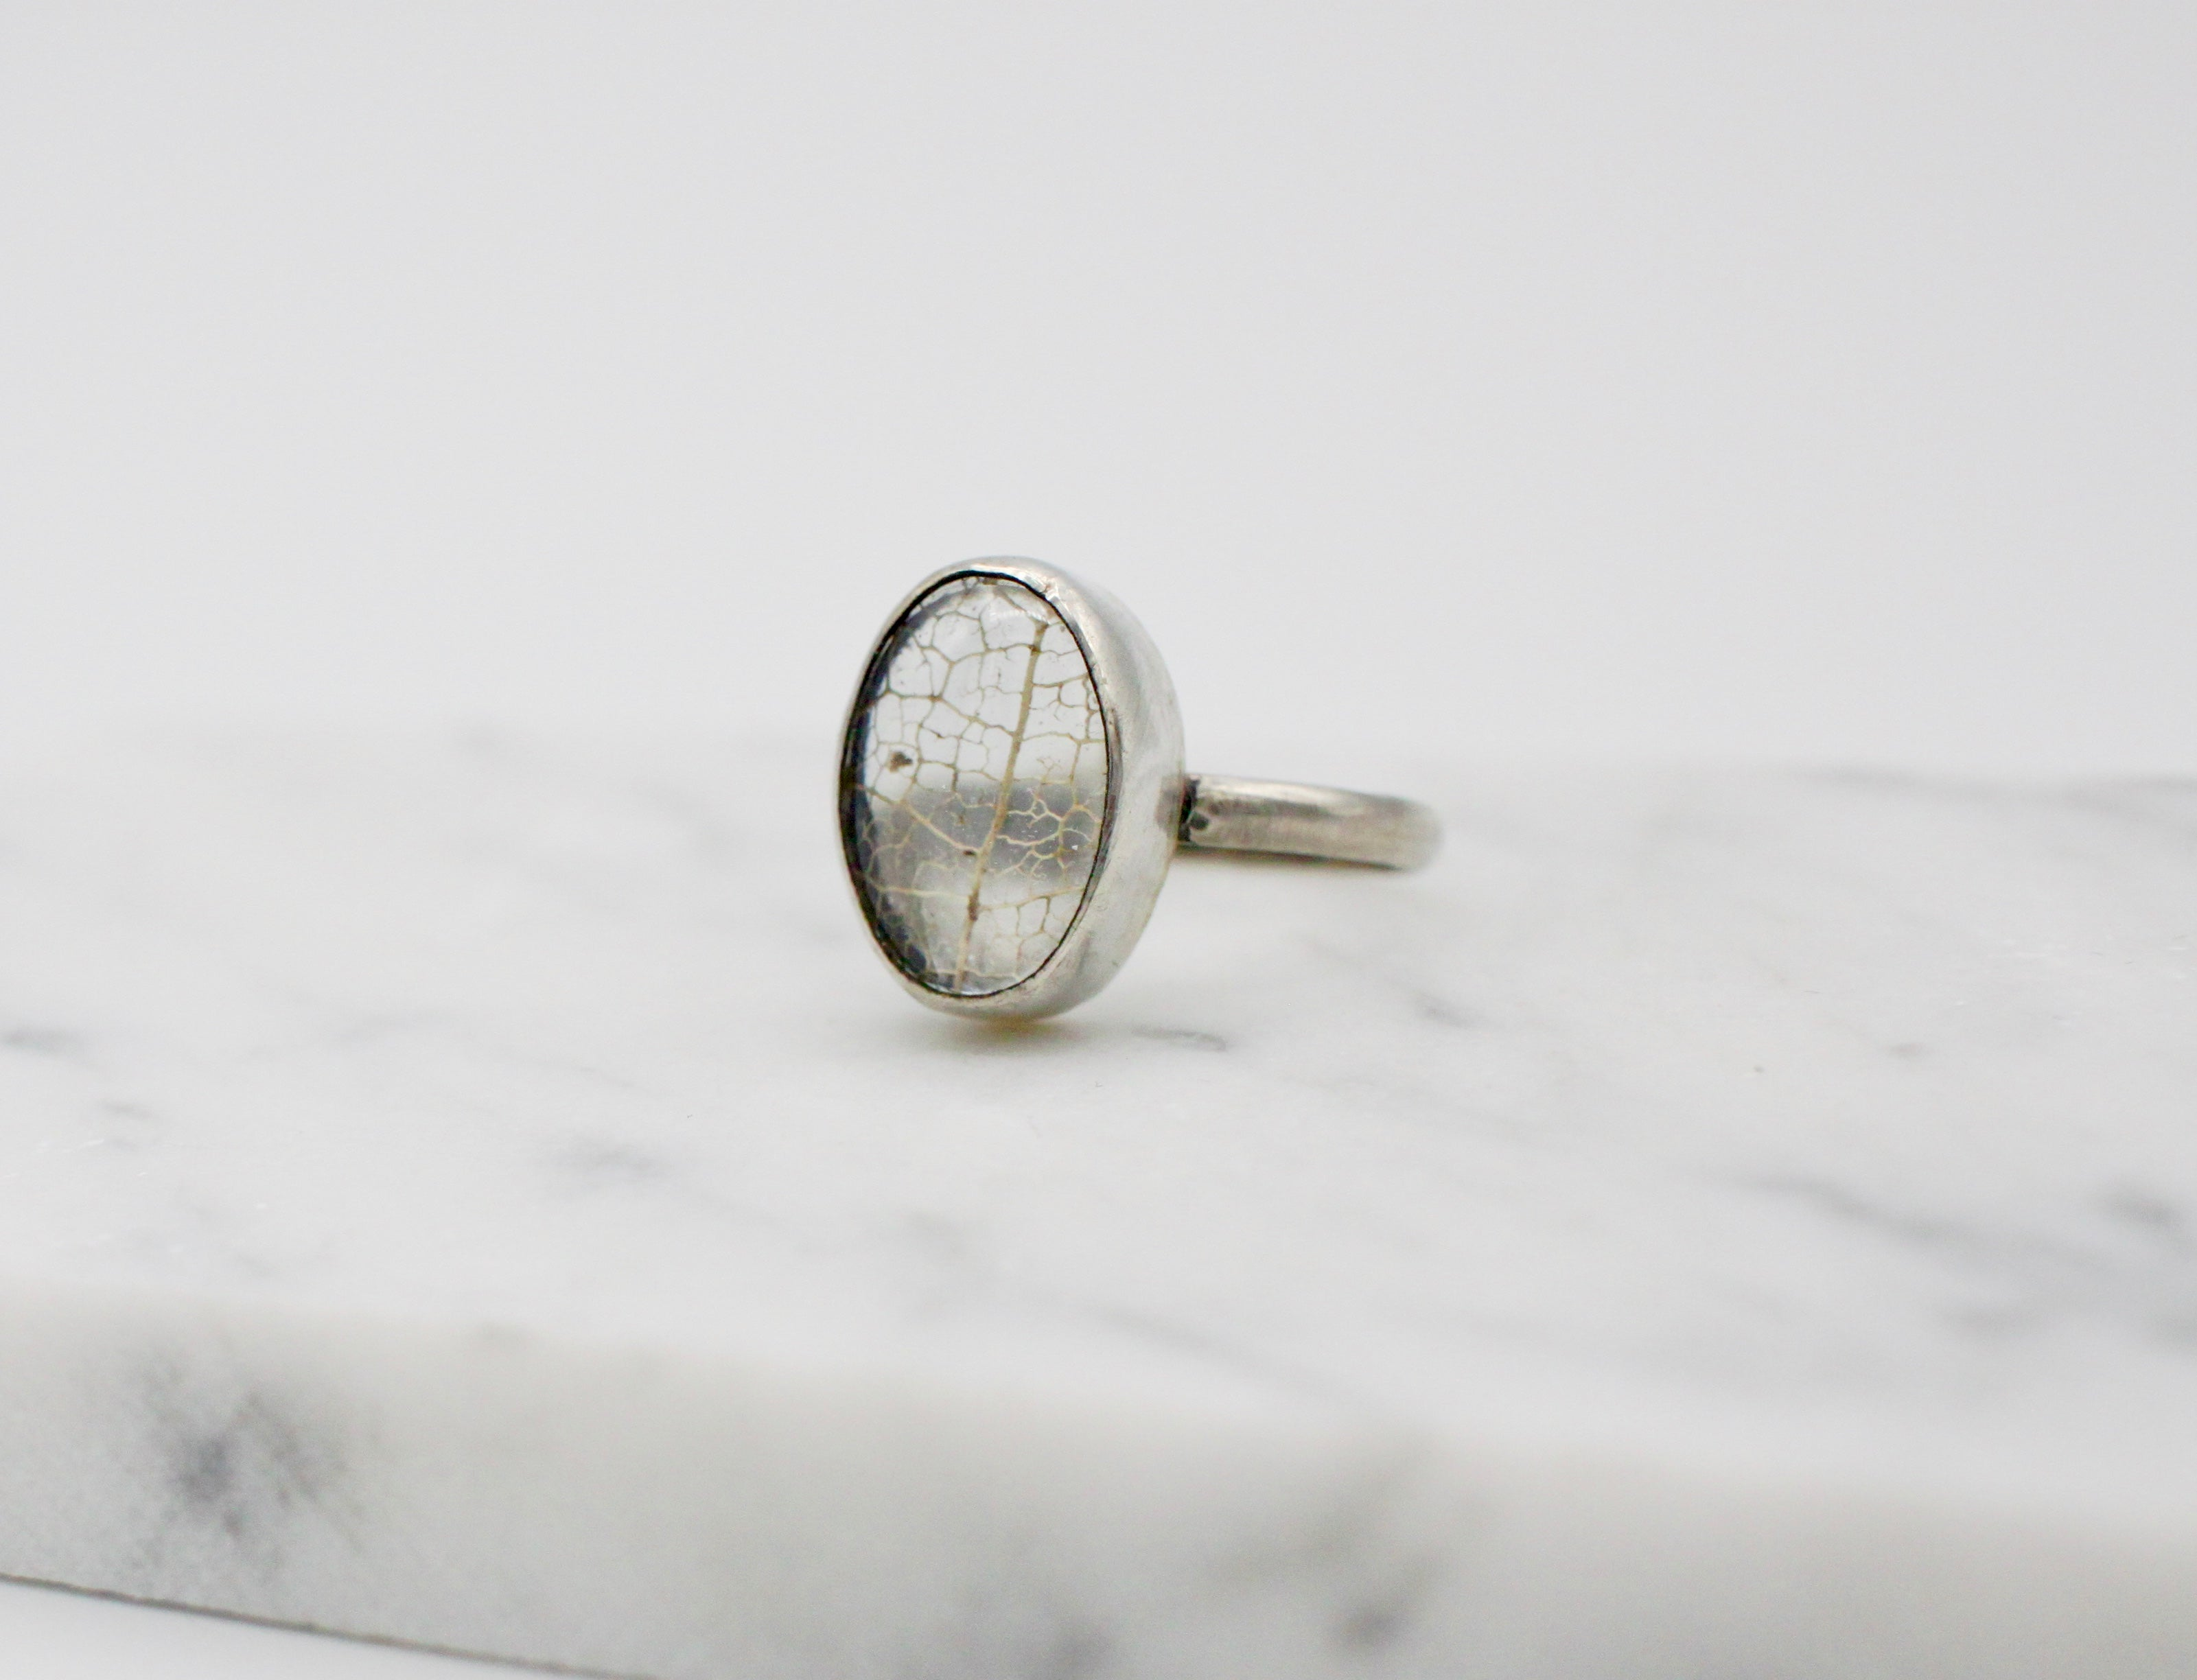 Small Oval Leaf Skeleton Pools of Light Ring - plain - size US 9